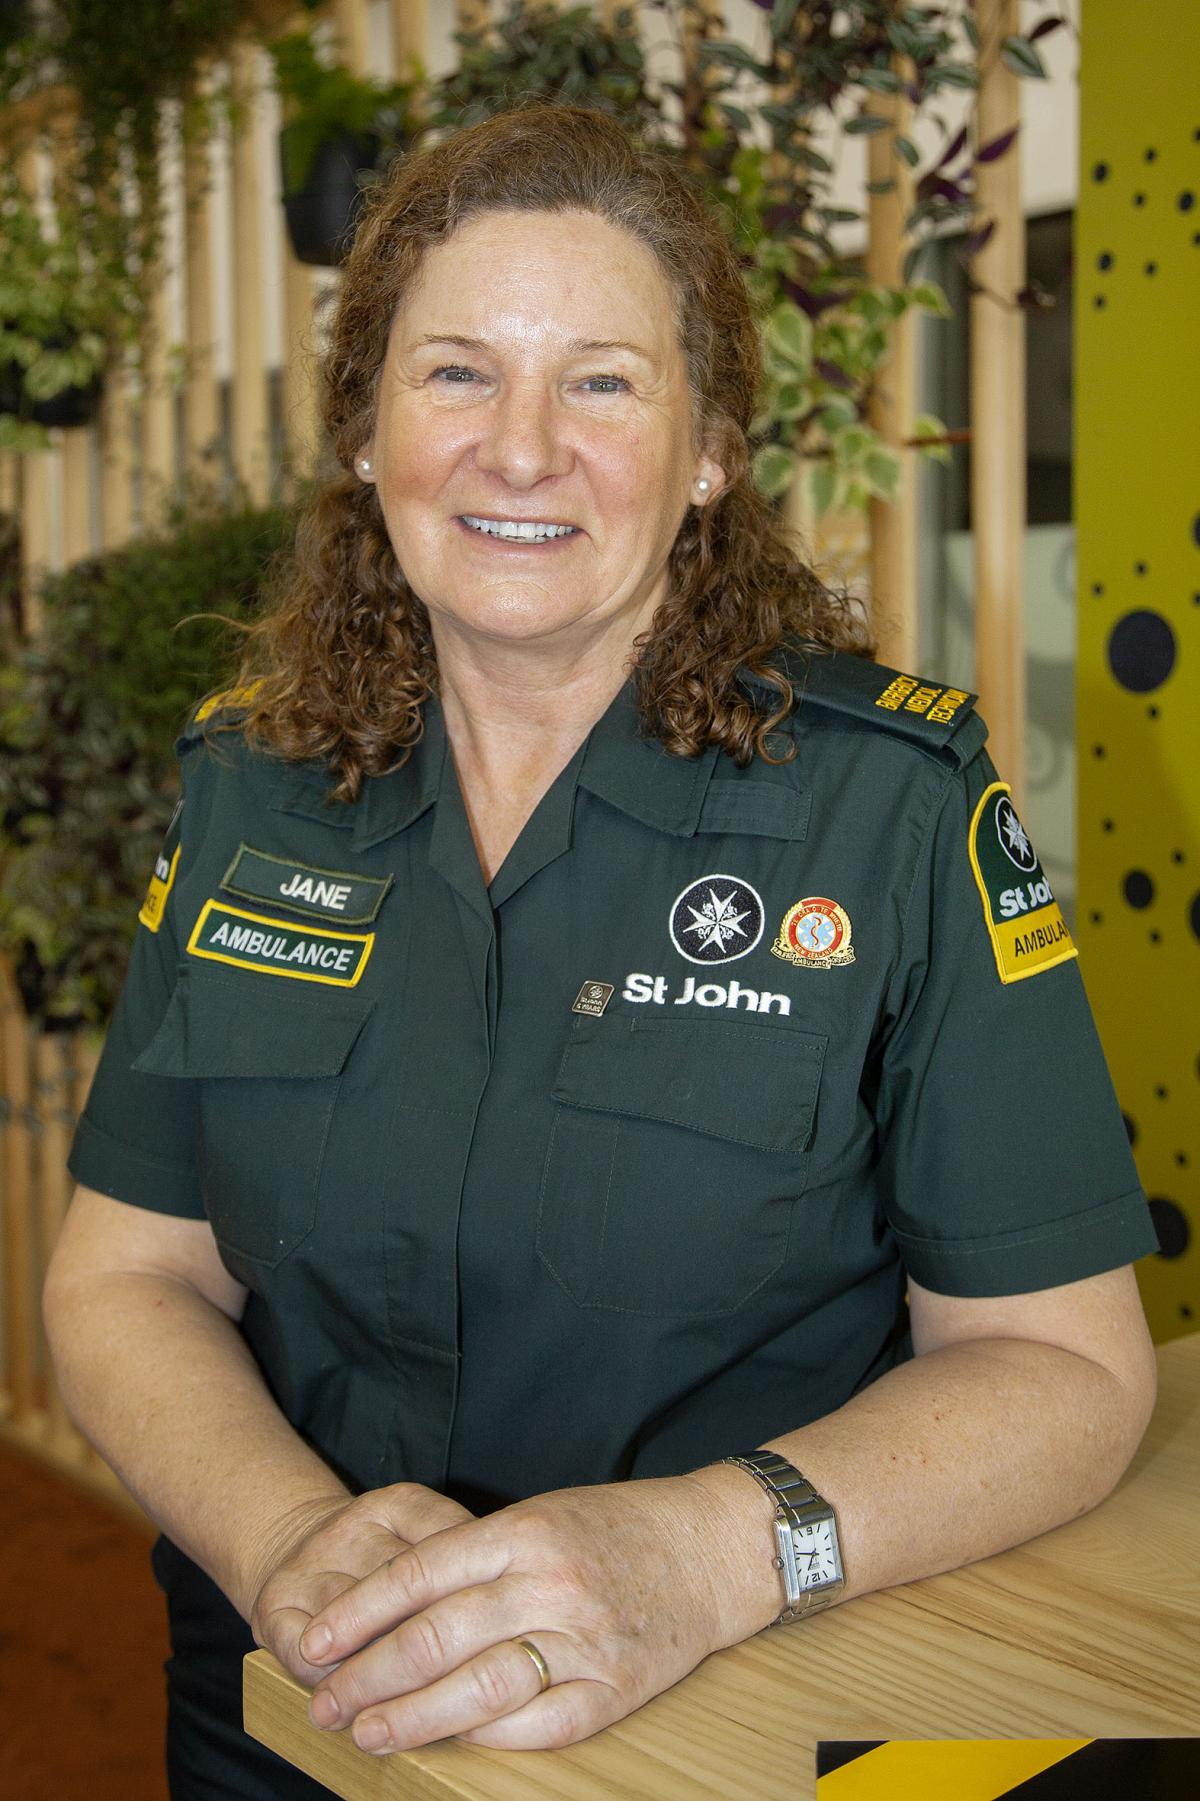 Covid hero and ambulance volunteer's passion for medicine